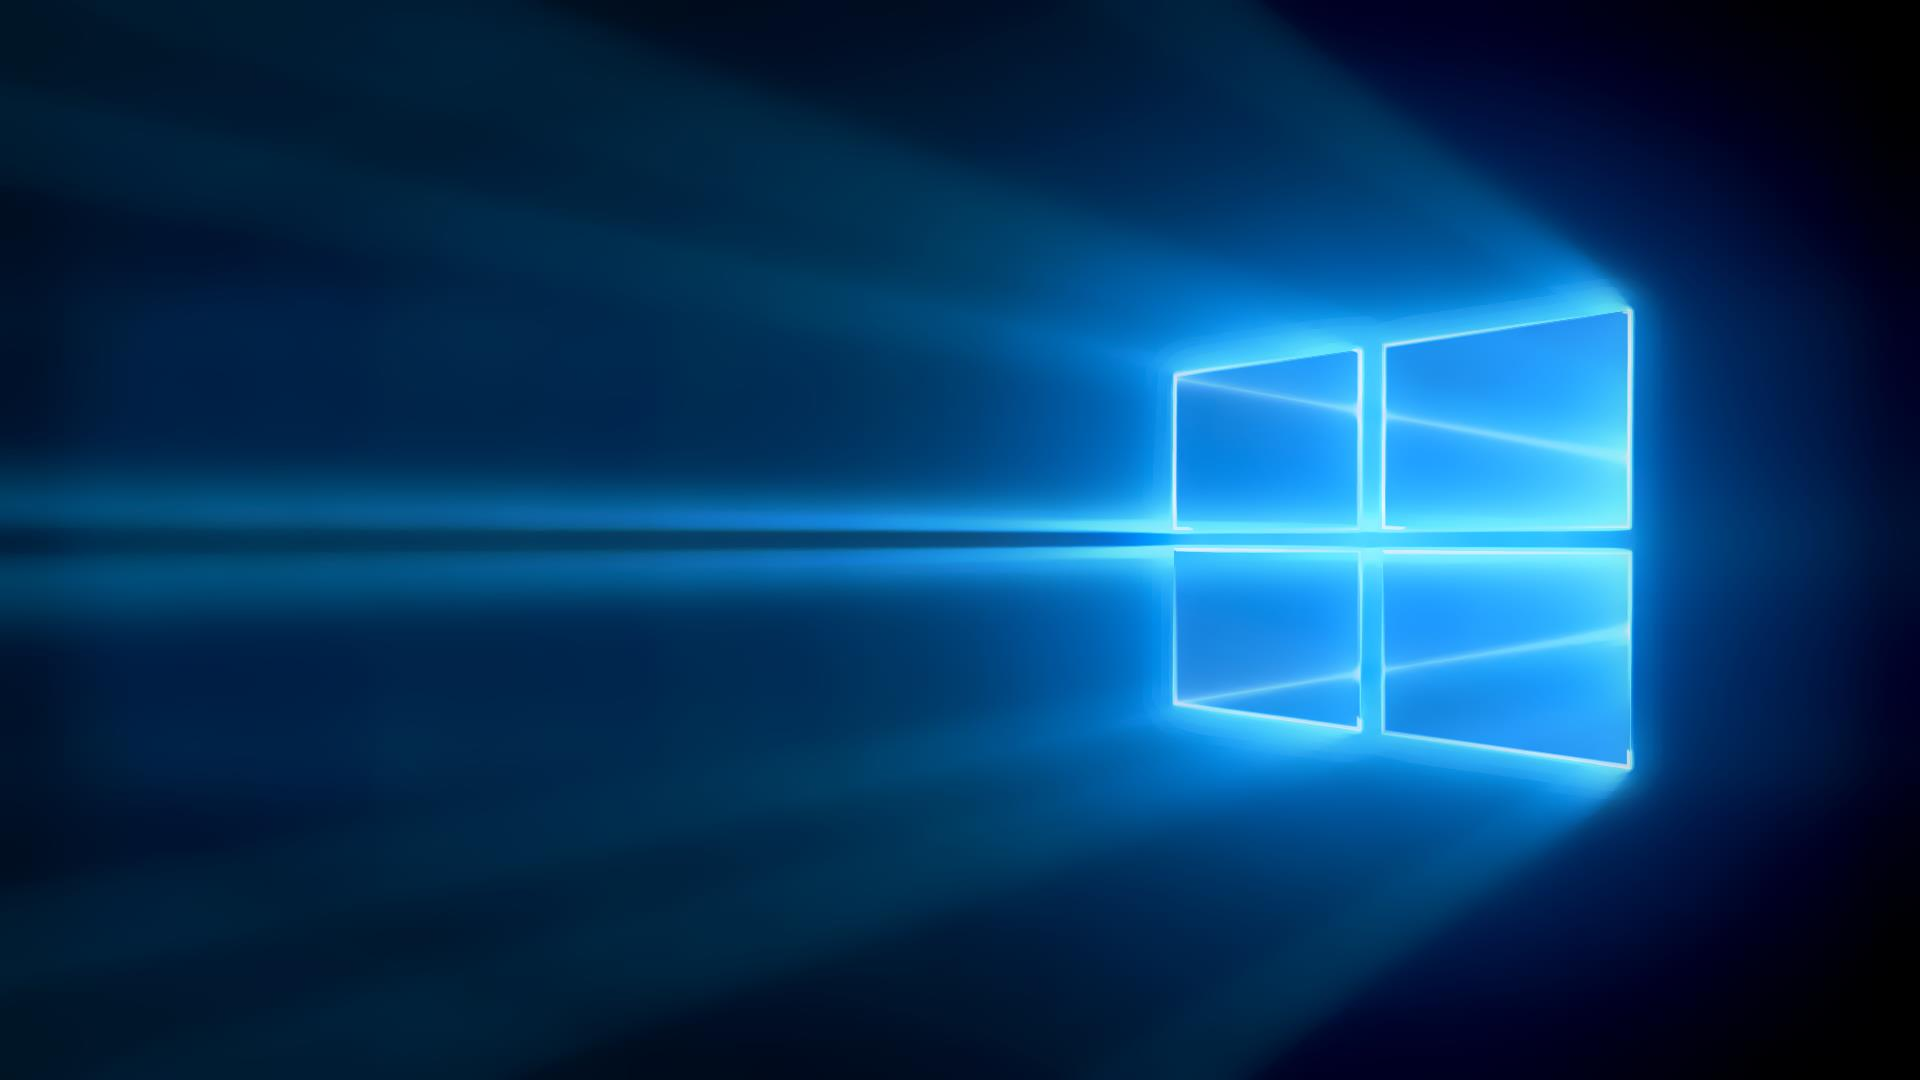 400 Stunning Windows 10 Wallpapers HD Image Collection